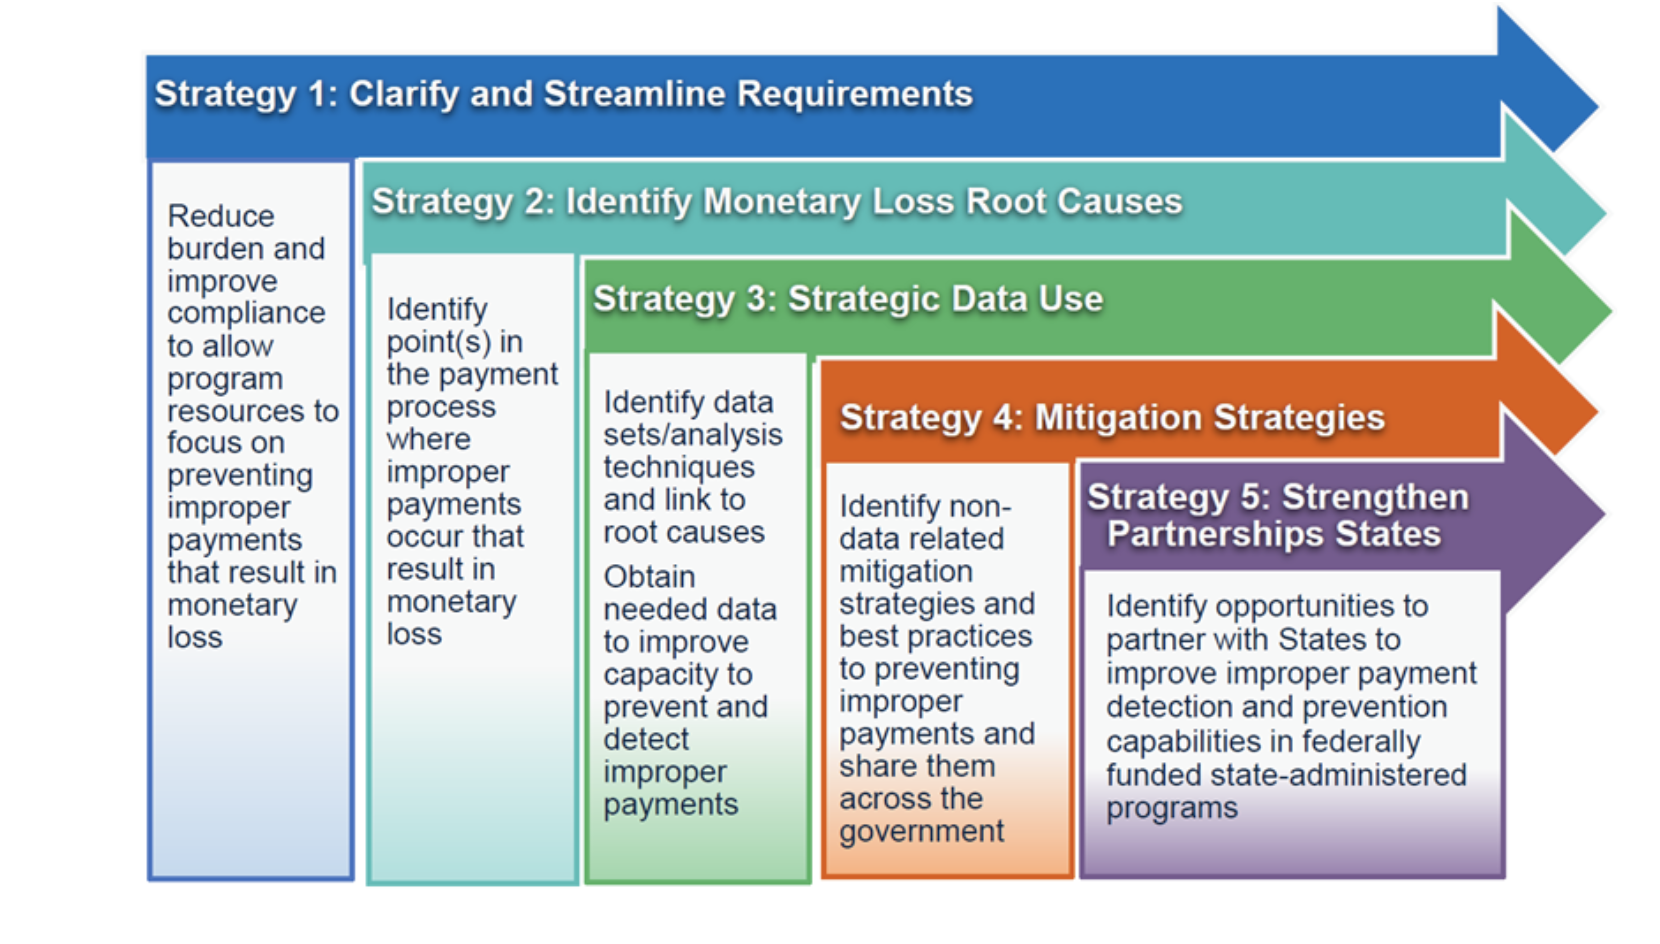 The Getting Payments Right Priority Area strategic approach features the following 5 strategies. These strategies build on one another. Strategy 1: Clarify and Streamline Requirements -- Reduce burden and improve compliance to allow program resources to focus on preventing improper payments that result in monetary loss. Strategy 2: Identify Monetary Loss Root Causes -- Identify points(s) in the payment process where improper payments occur that result in monetary loss. Strategy 3: Strategic Data Use -- Identify data sets/analysis techniques and link to root causes. Obtain needed data to improve capacity to prevent and detect improper payments. Strategy 4: Mitigation Strategies -- Identify non-data related mitigation strategies and best practices to preventing improper payments and share them across the government. Strategy 5: Strengthen Partnership States -- Identify opportunities to partner with States to improve improper payment detection and prevention capabilities in federally funded state-administered programs.